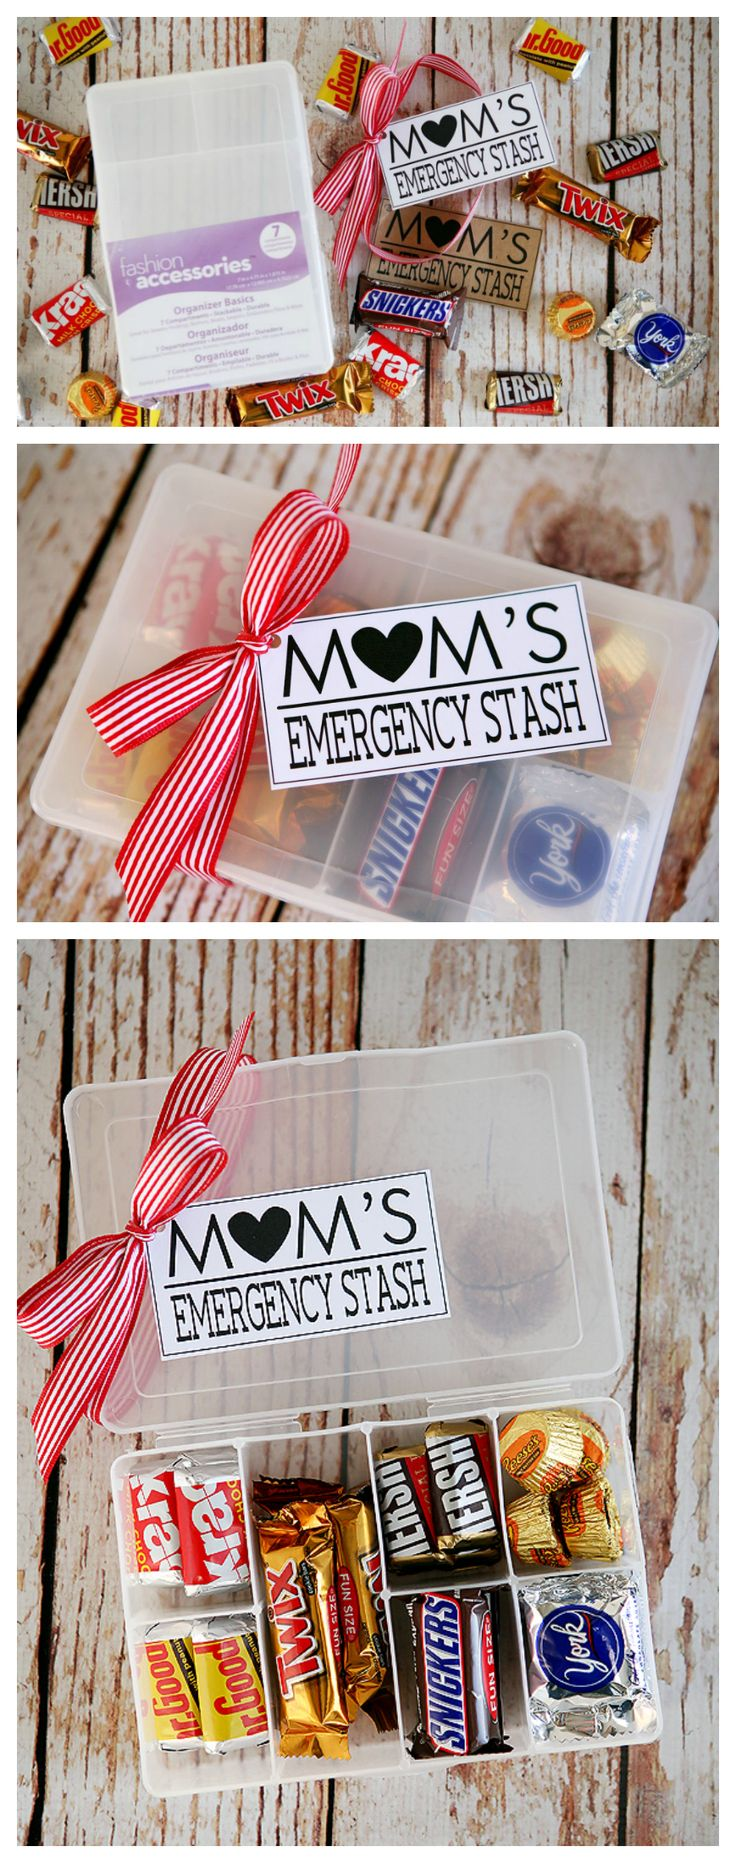 Mom's Emergency Stash | Mother's Day Gift Ideas